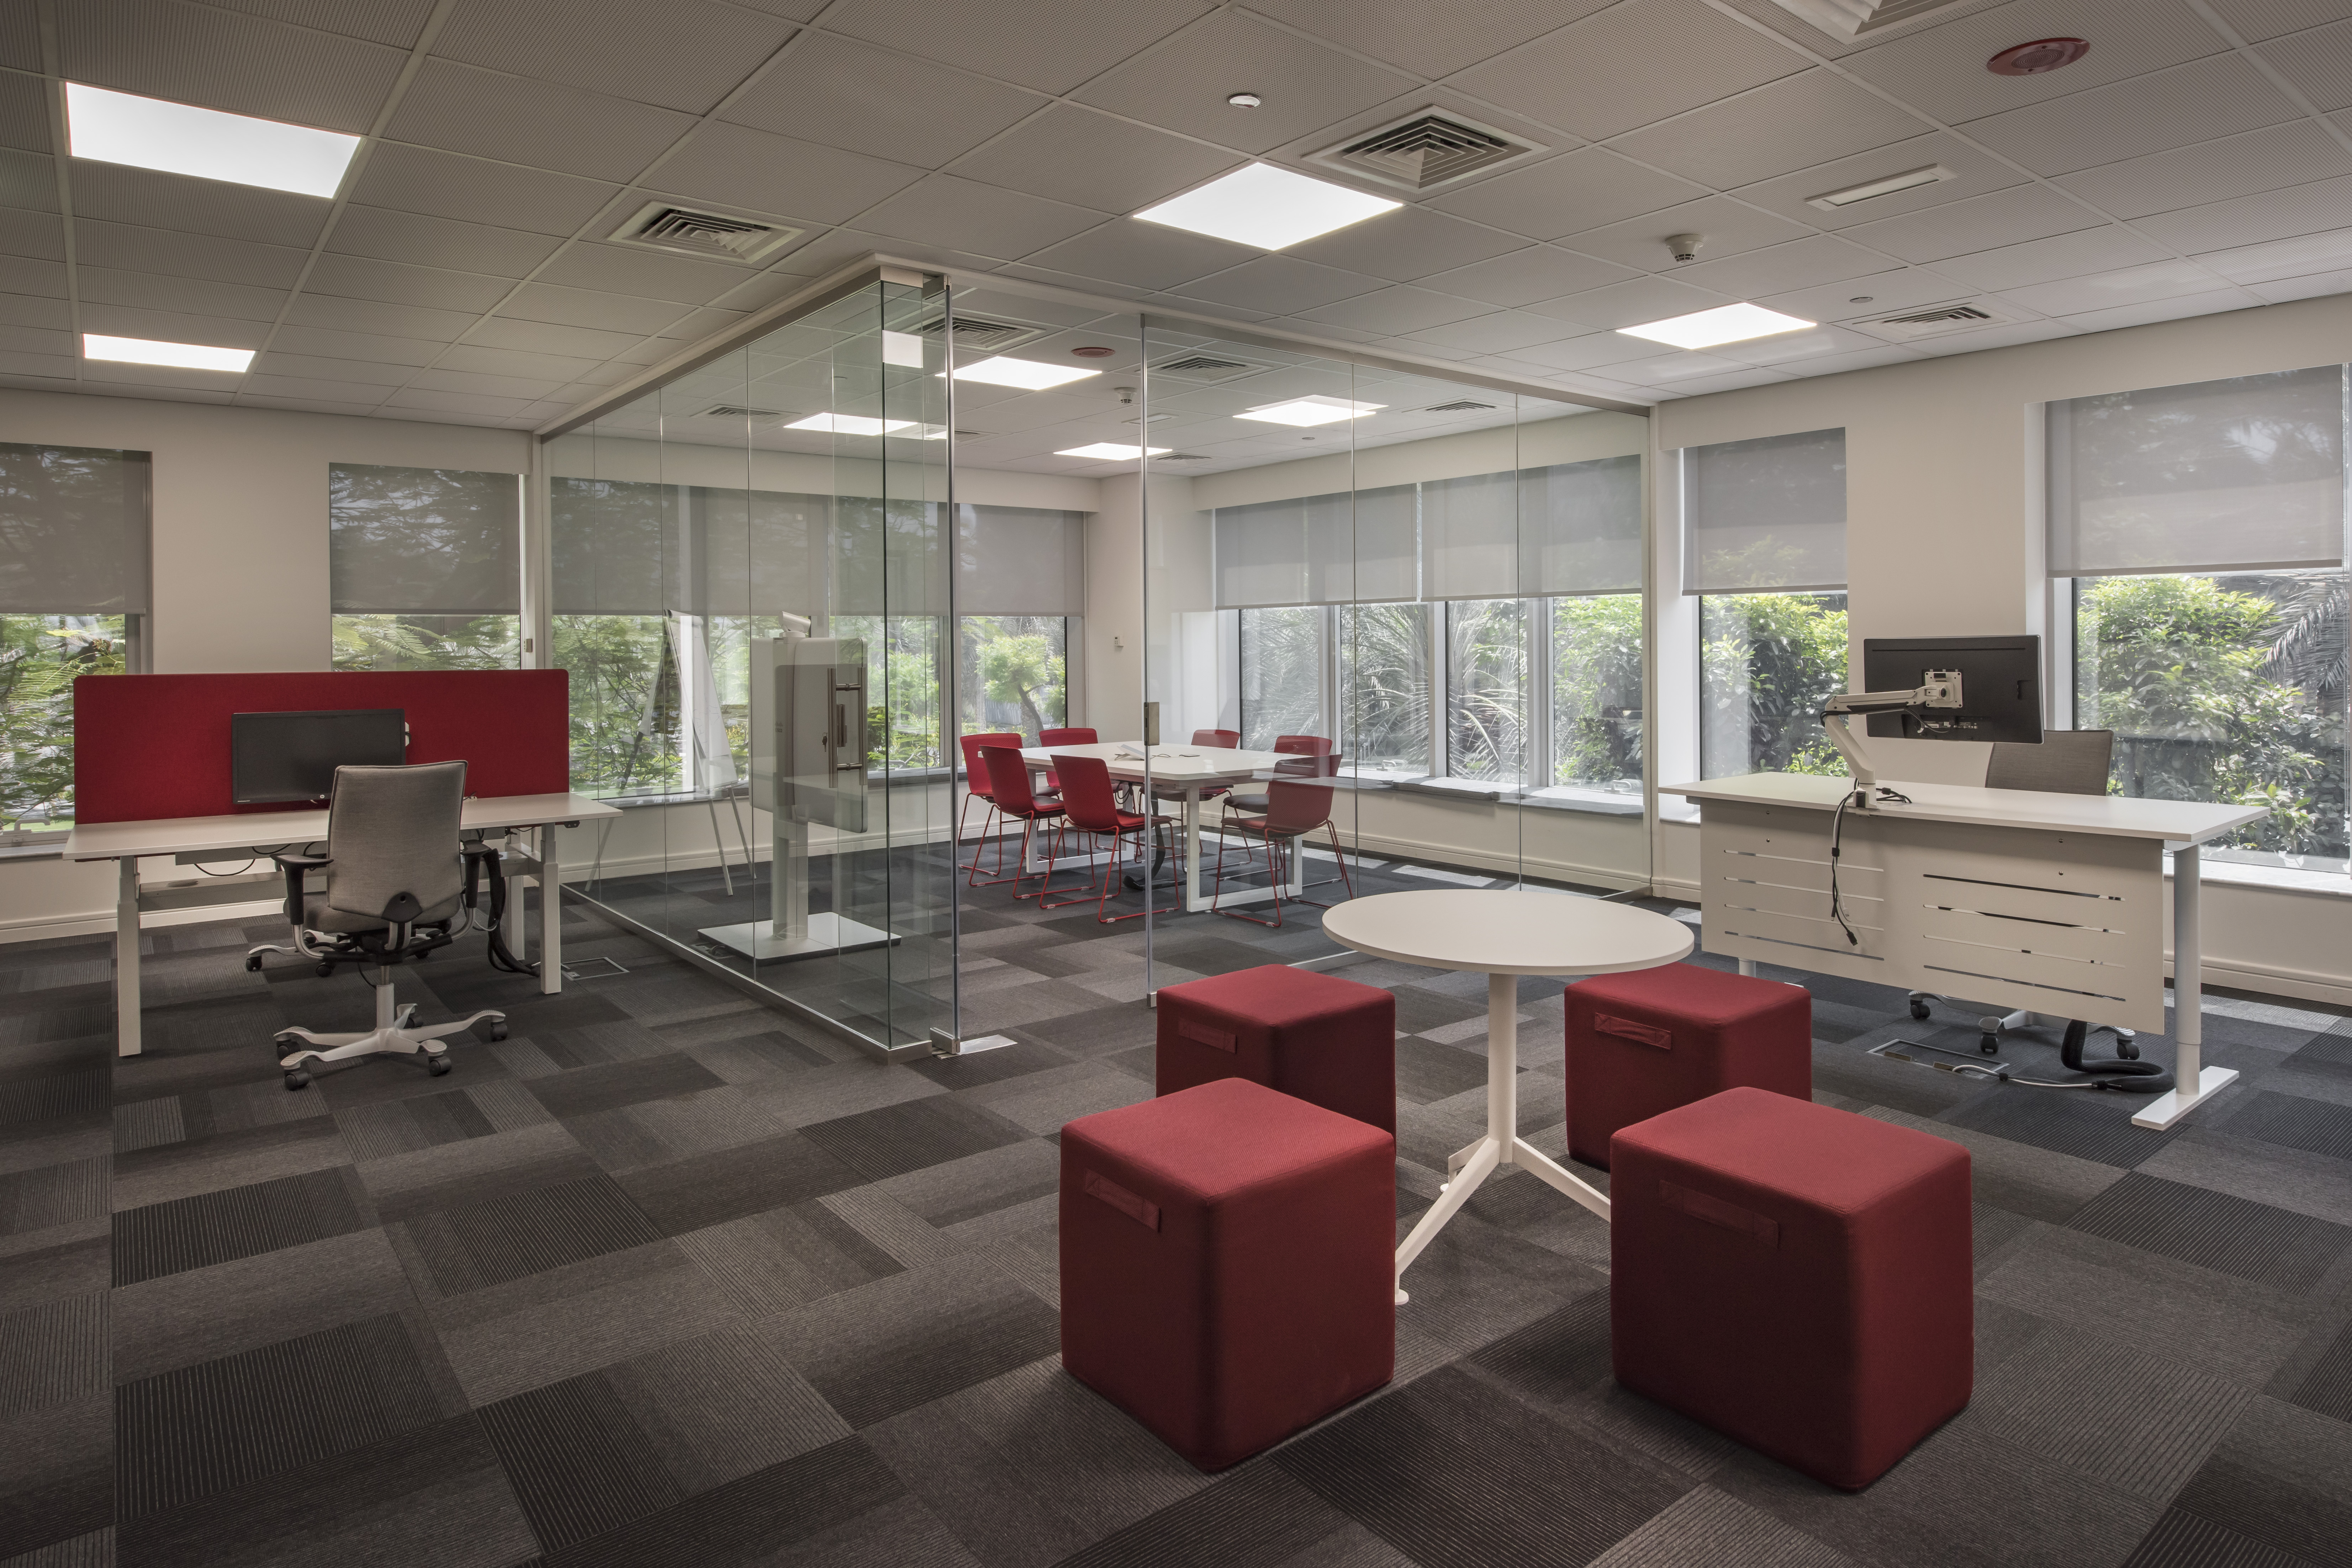 Spaces that accomodates different types of work activities, including formal and informal meetings, ensures that the needs of Canon's regional teams are efficiently met.